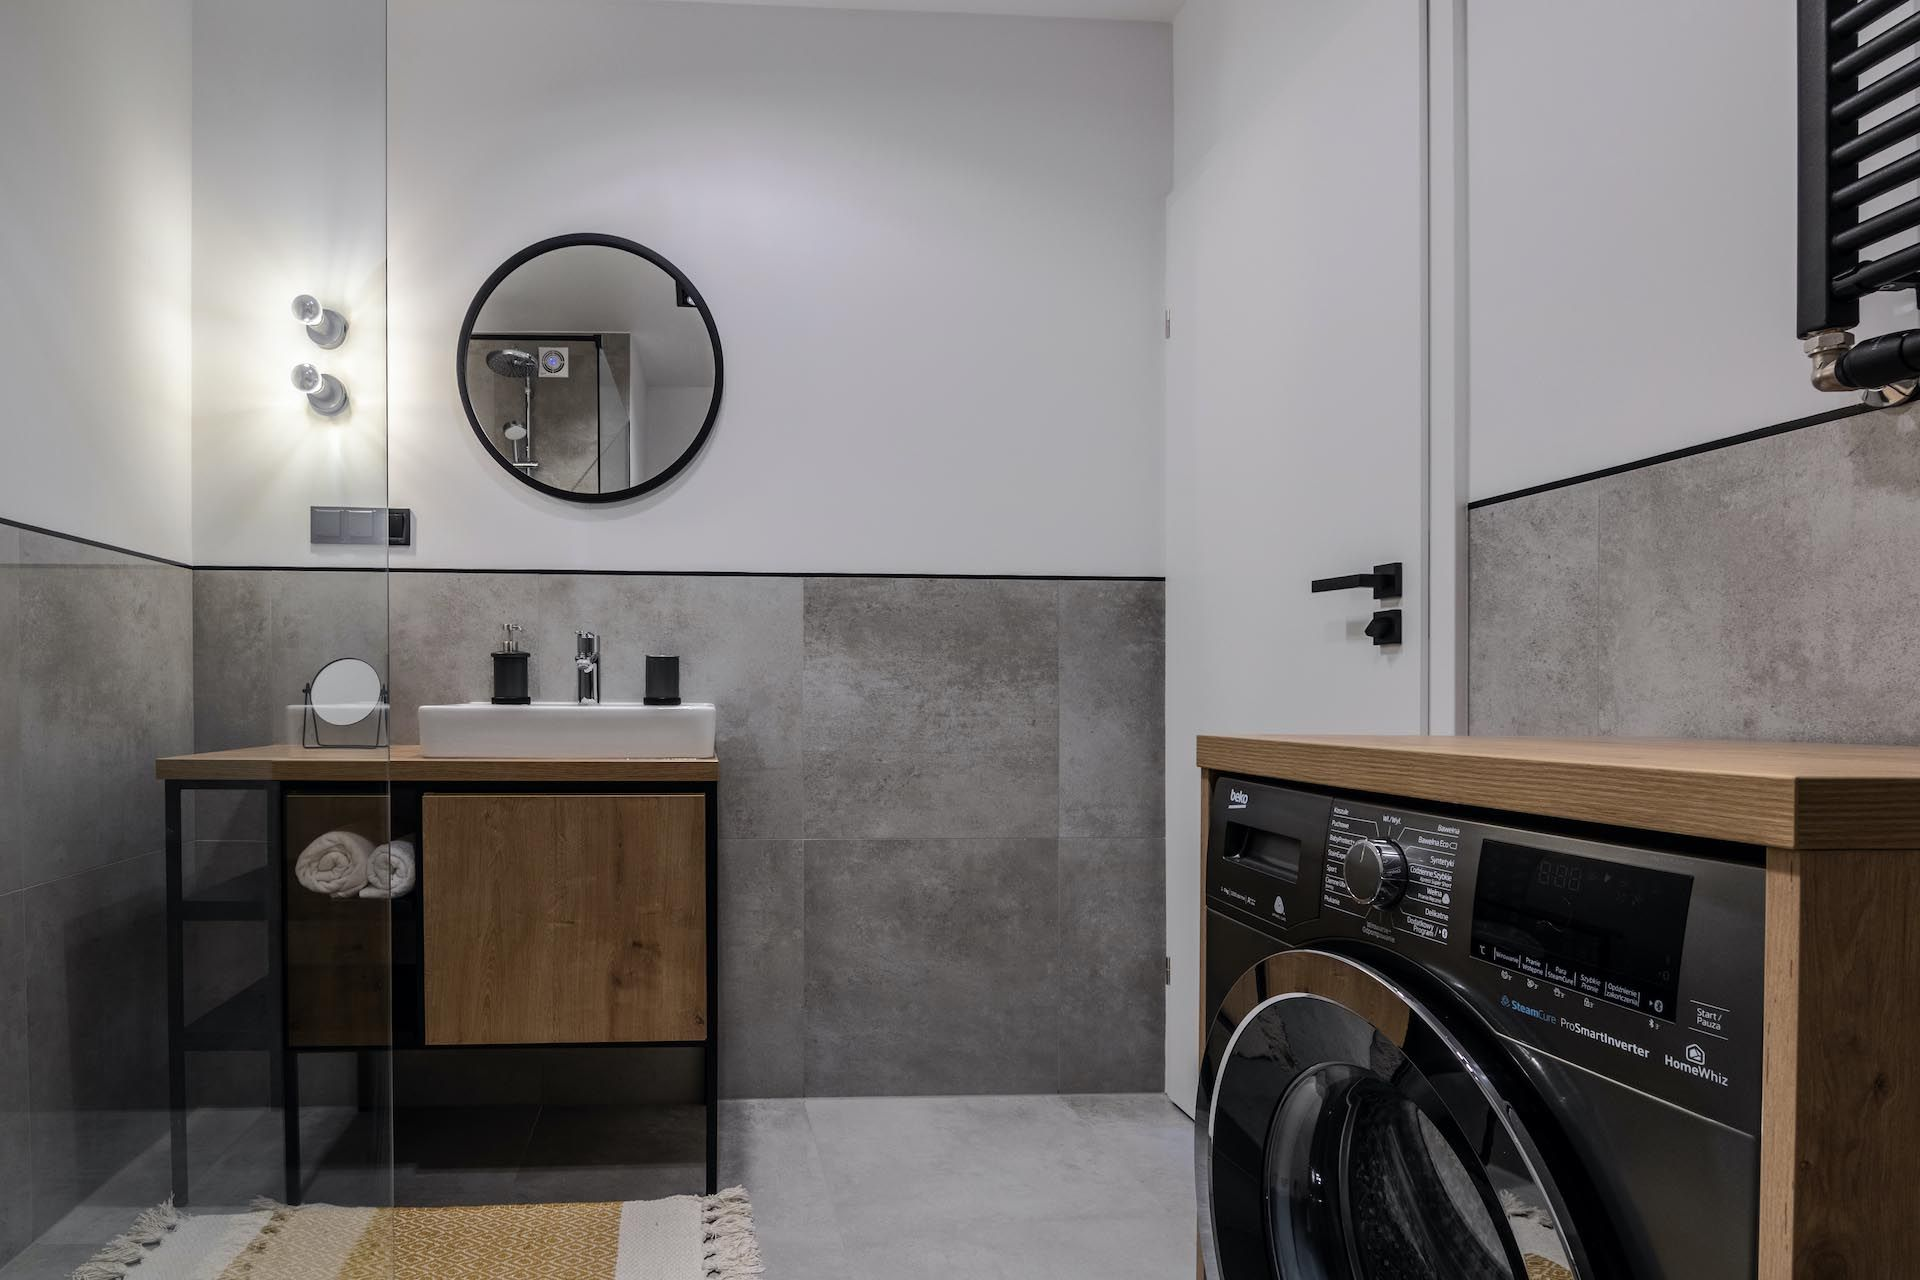 Studio - Large apartment to rent in Warsaw UPR-A-058-3